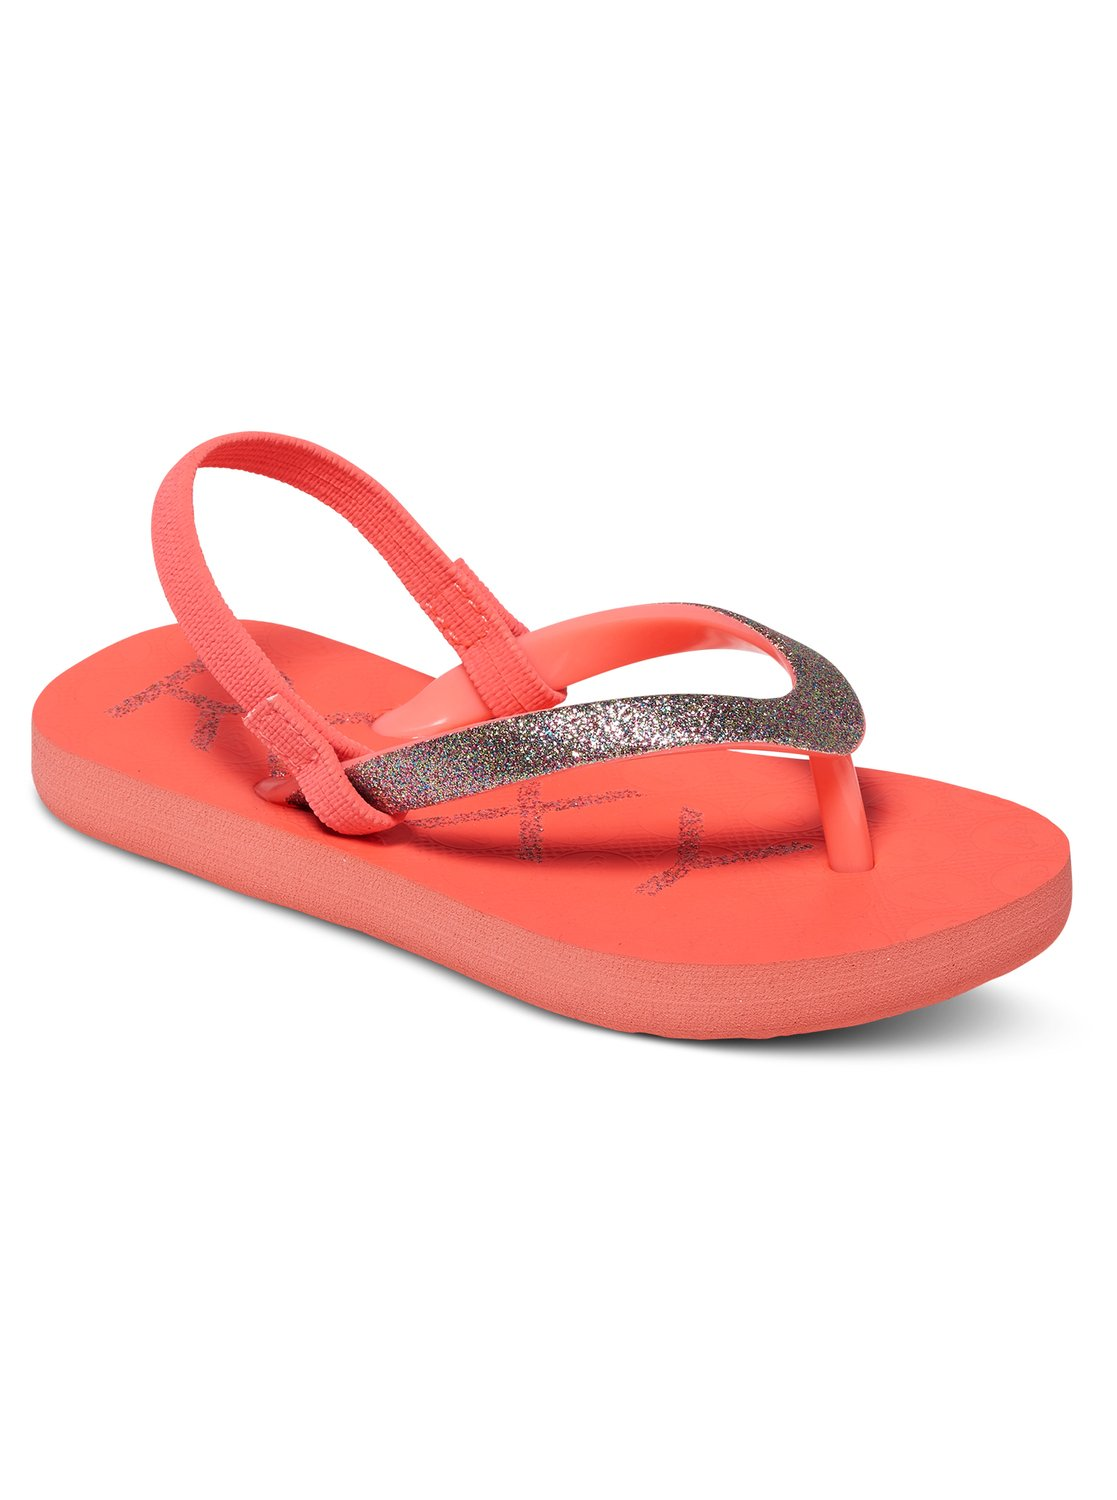 fbb1e7ef722b 0 Viva Glitter - Flip-Flops for Toddlers Red AROL100007 Roxy